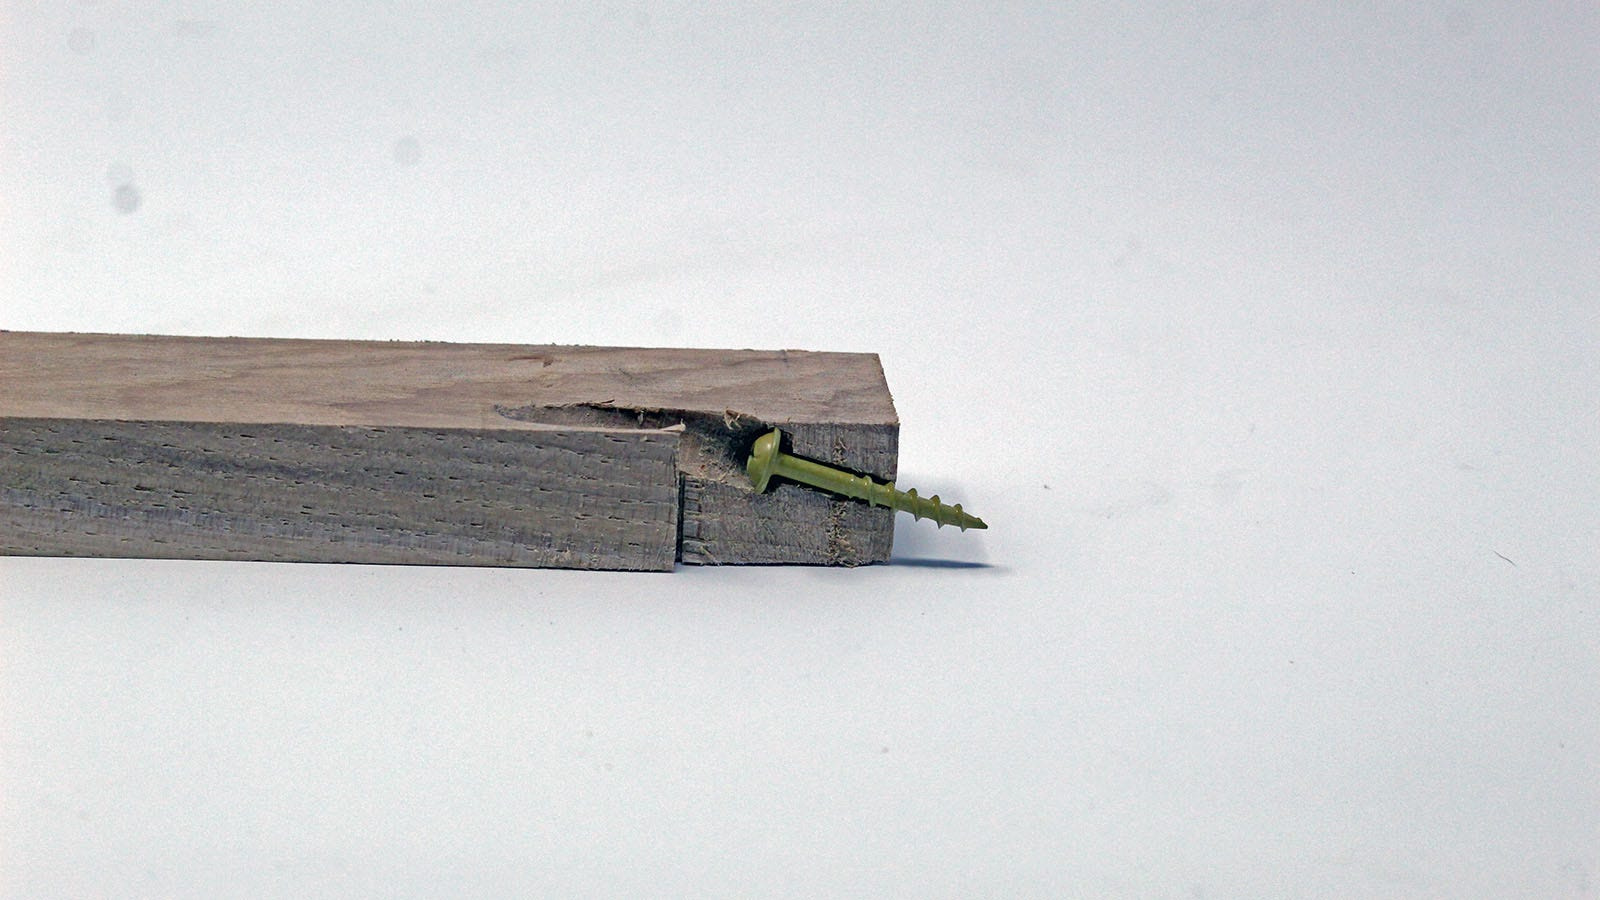 A wood board with the edge cut off, revealing the interior of a pocket hole.